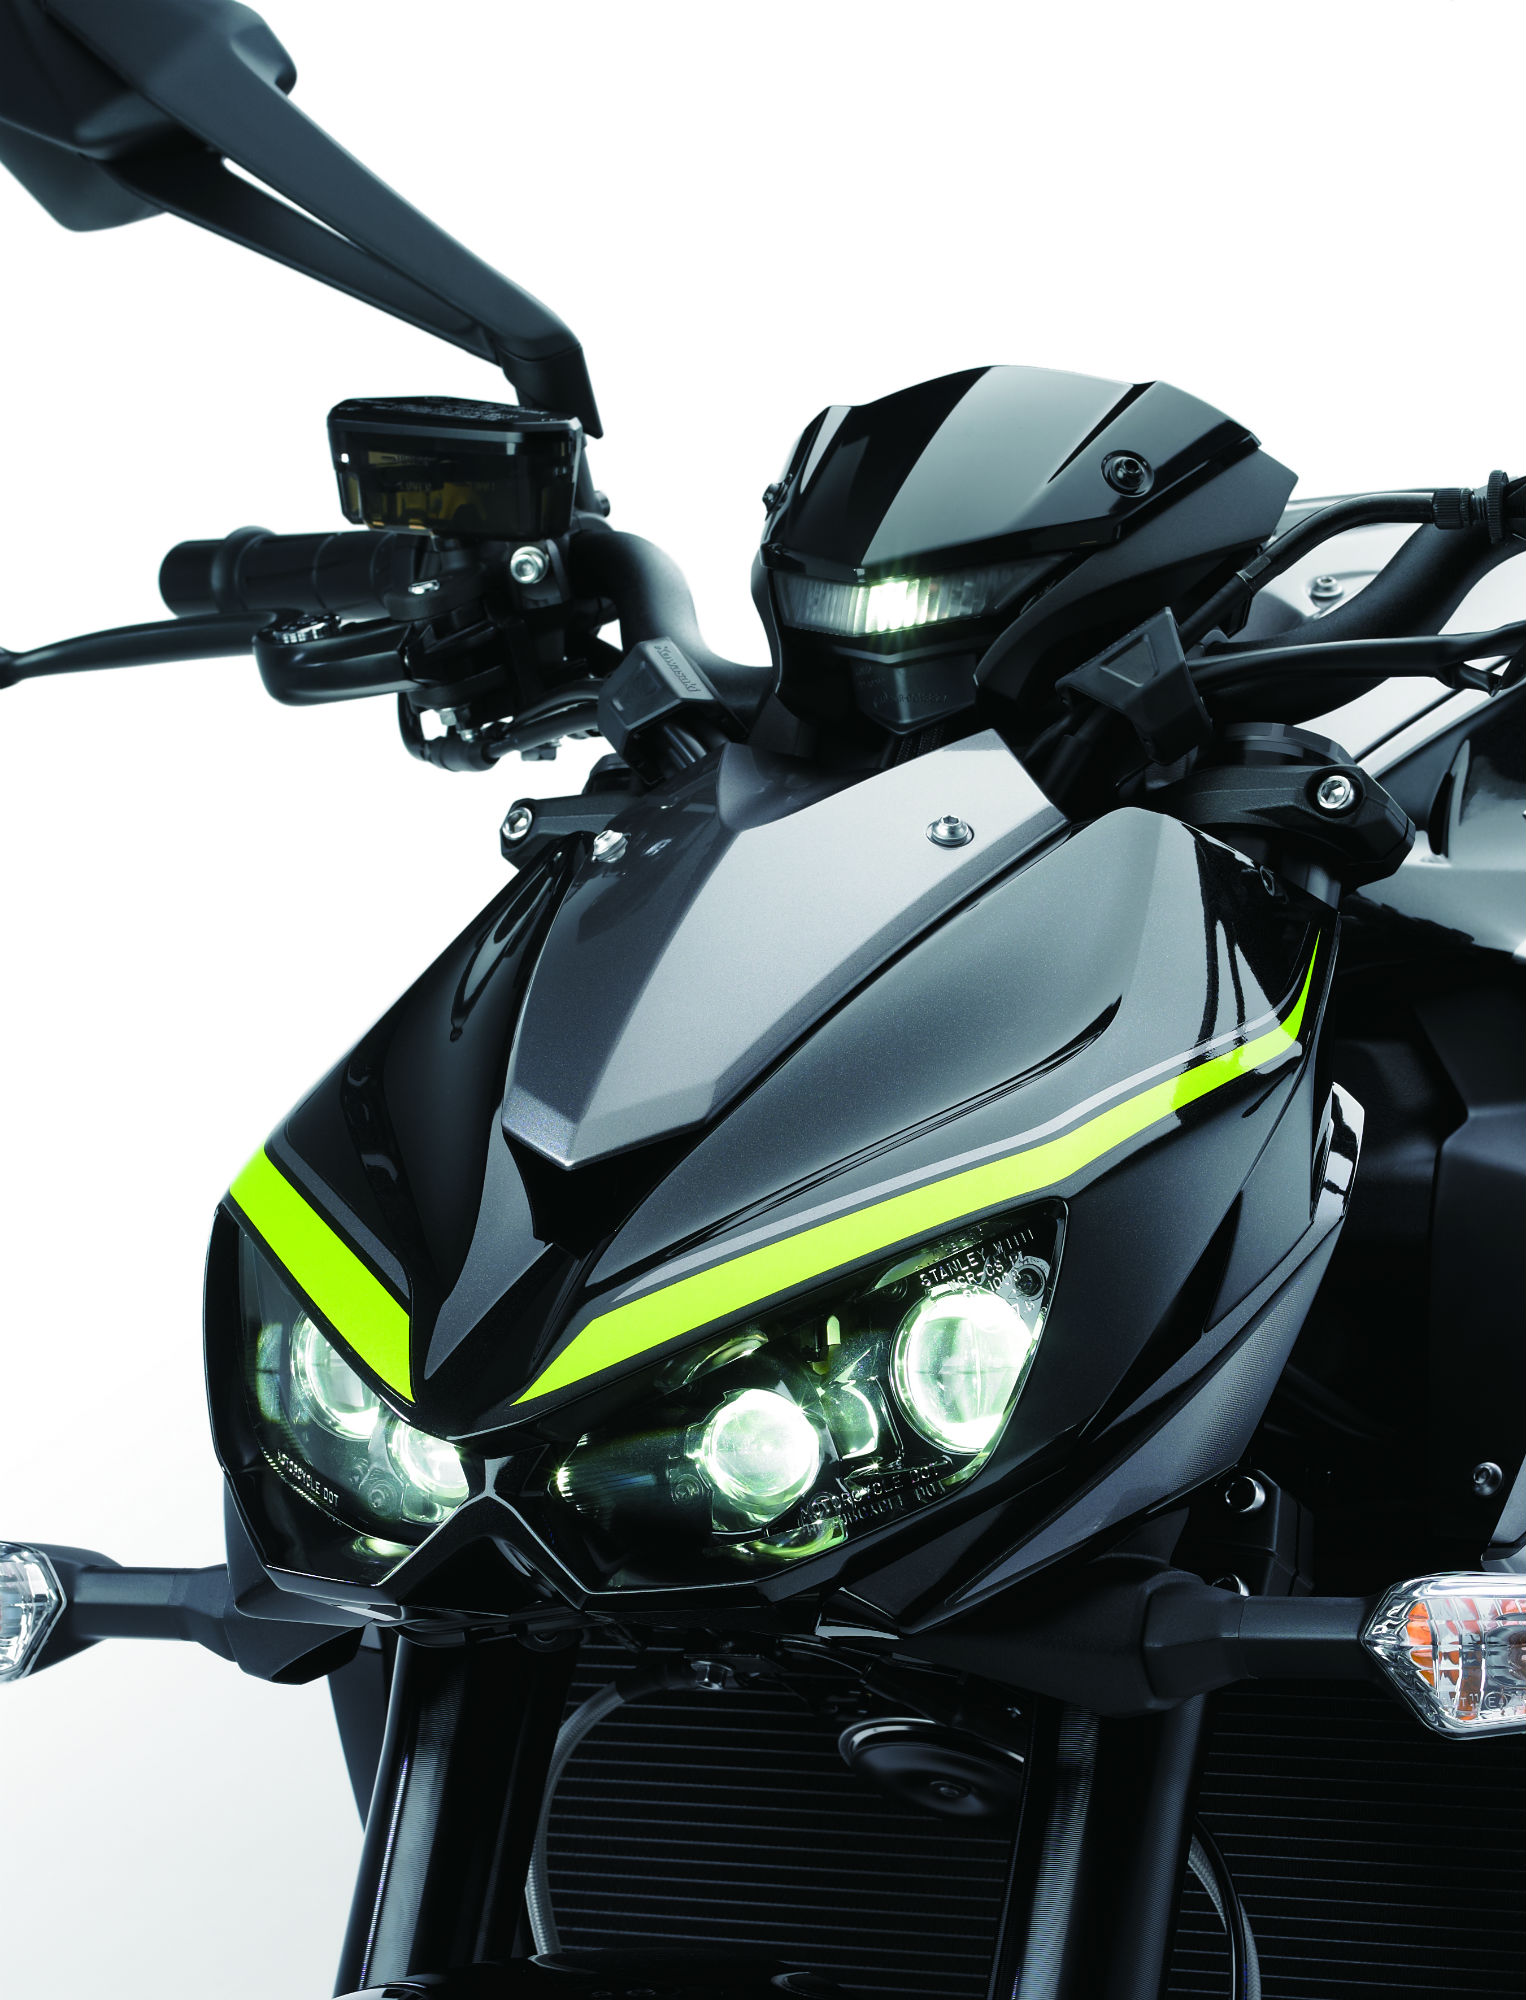 New Kawasaki Z1000 R revealed